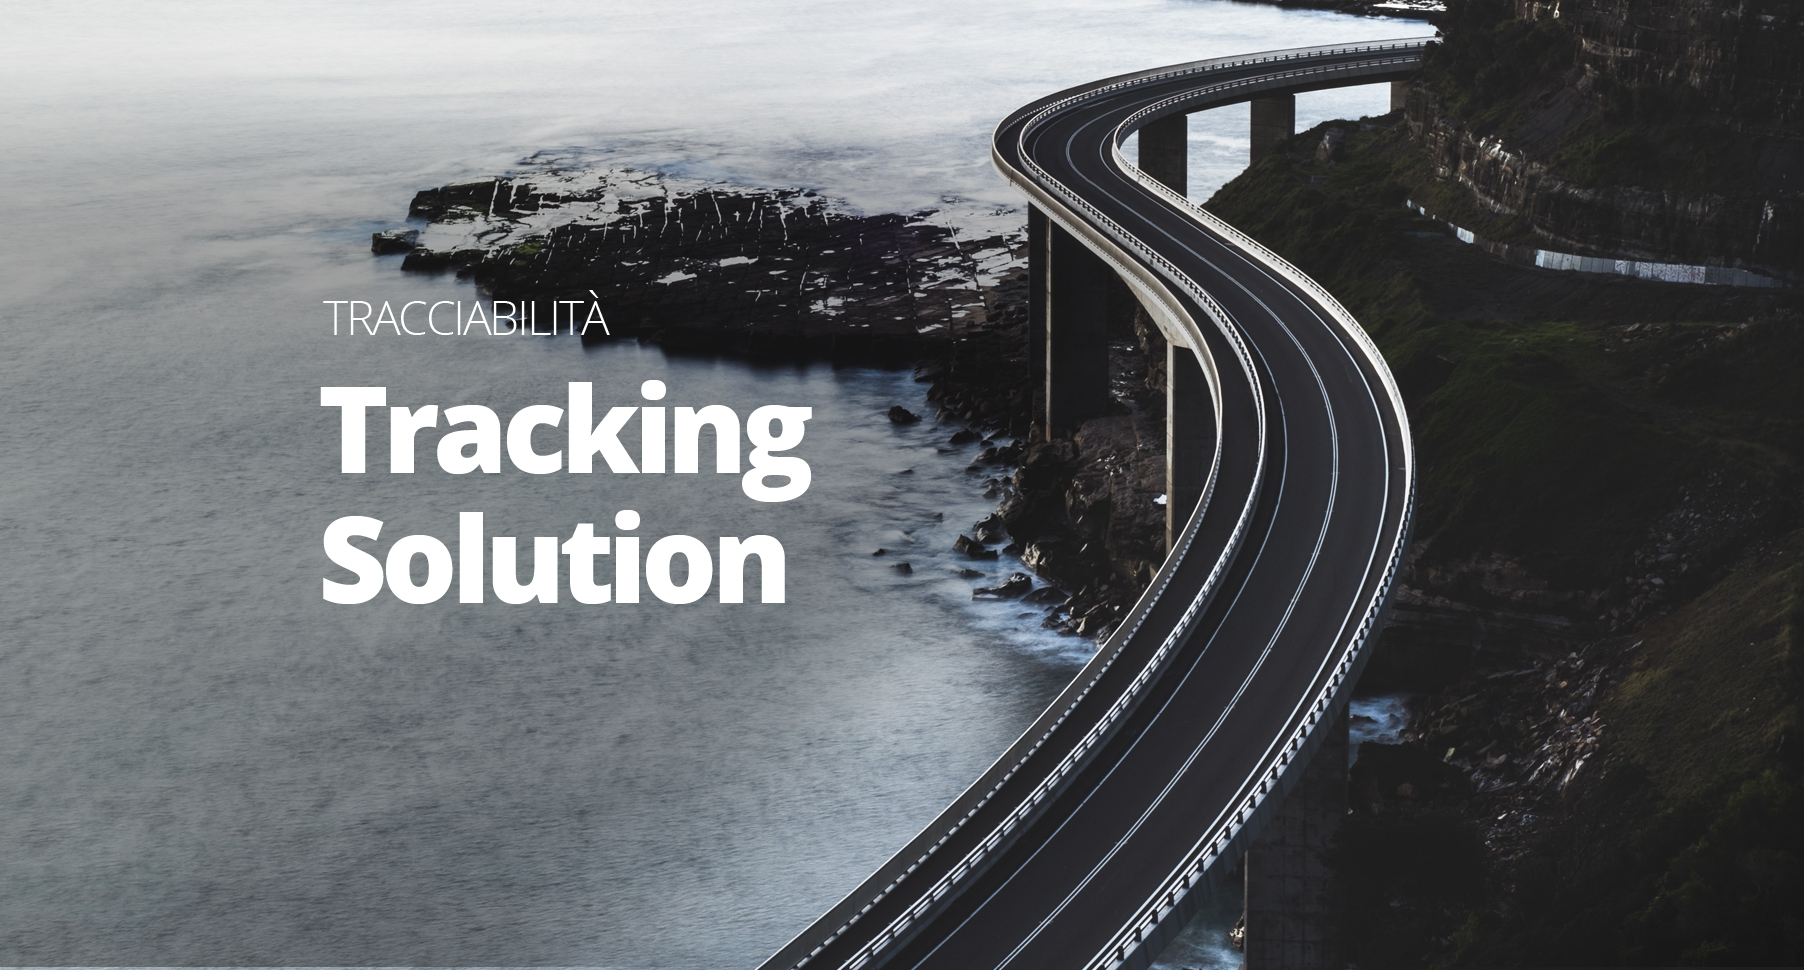 Lifting solution tracking